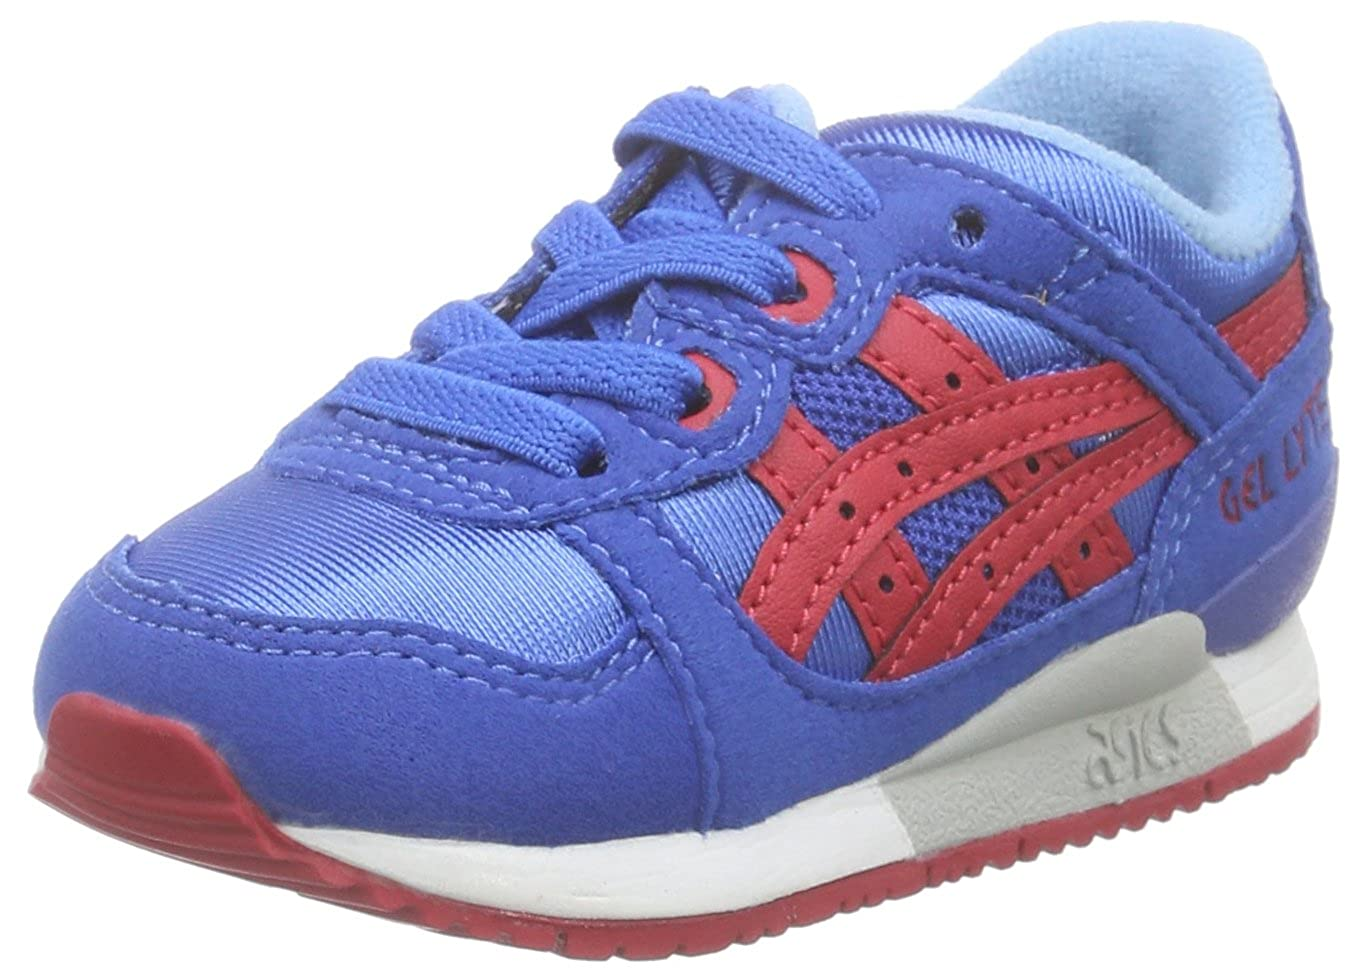 reputable site 95060 57805 ASICS Unisex Gel-Lyte Iii Ts Walking Baby Shoes, Blue ...